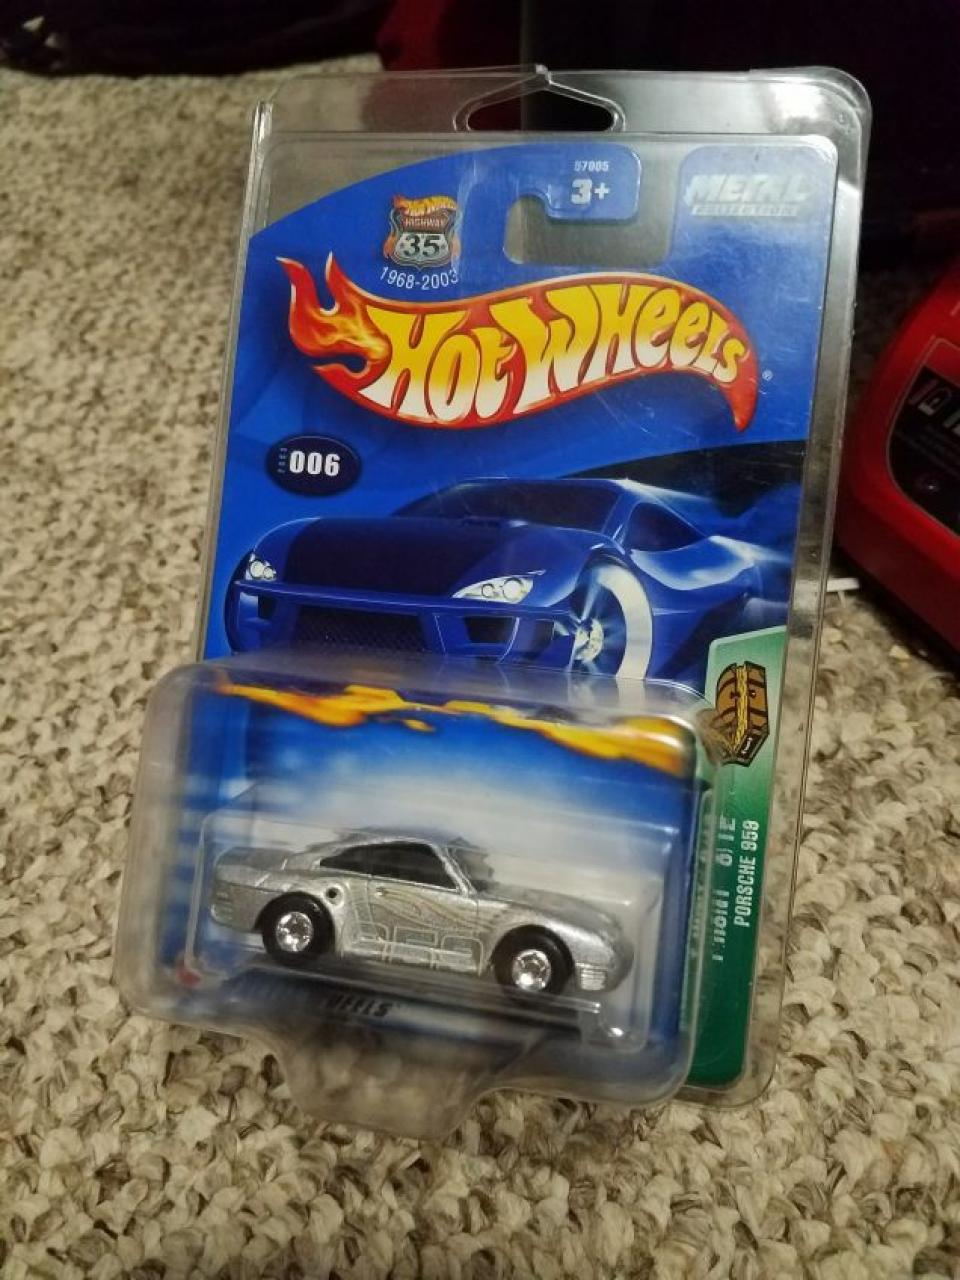 $upers before they were $uper